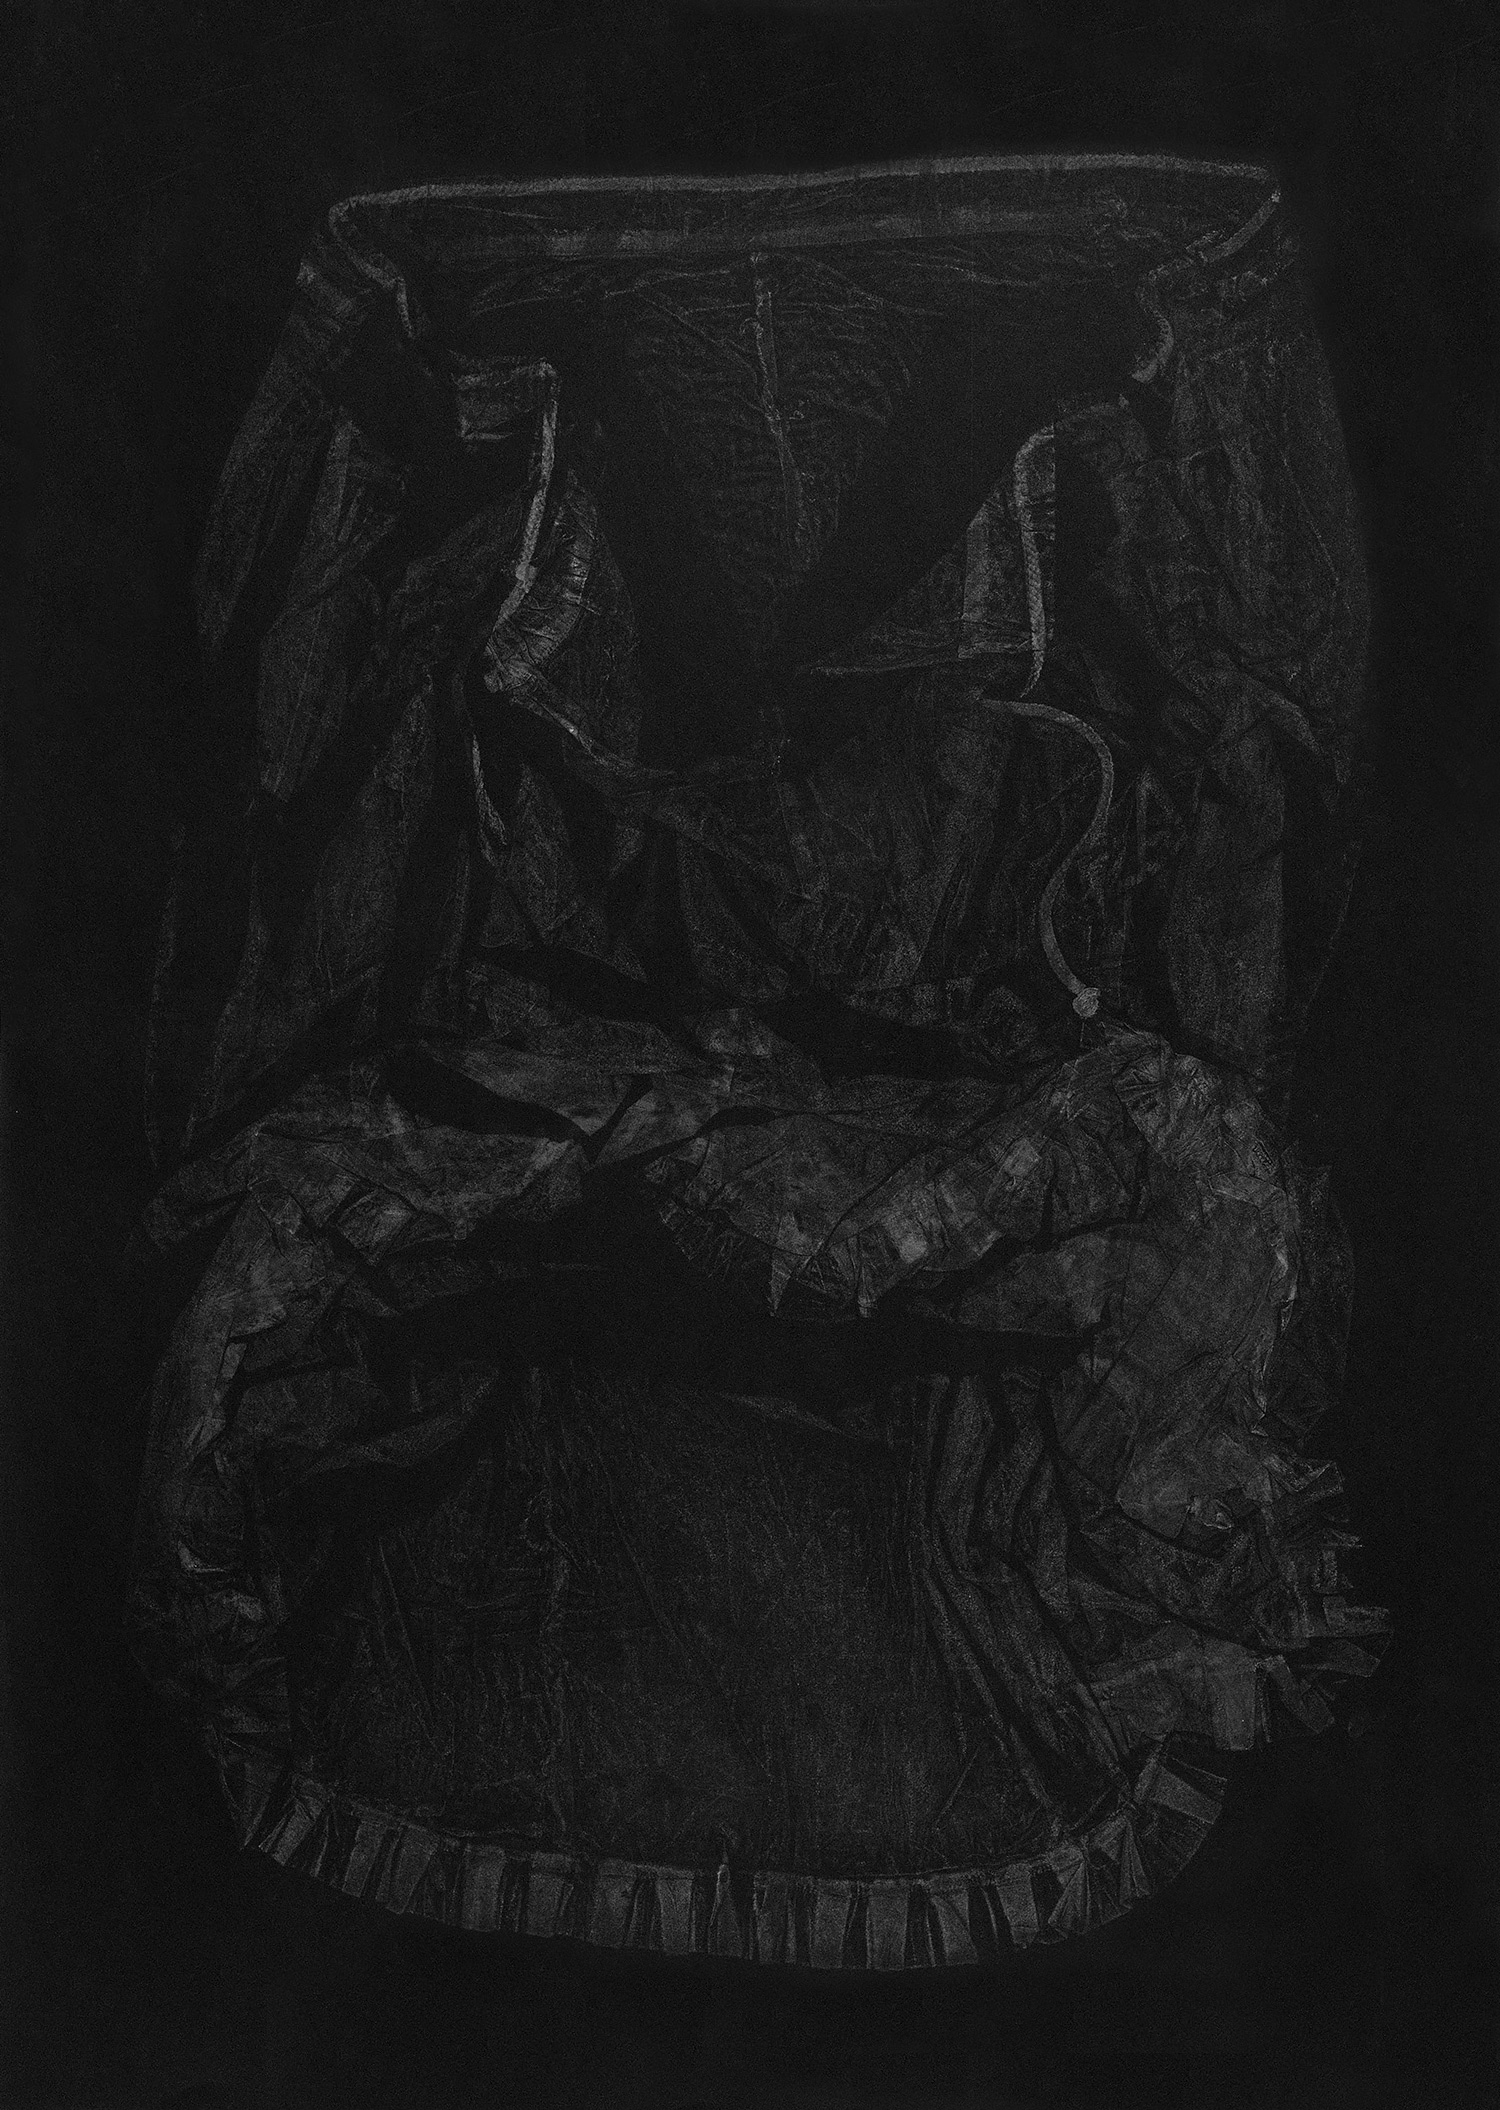 Petticoat , 2016, relief monoprint, offset ink on Velin Arches Black, 113 x 76.5 cm